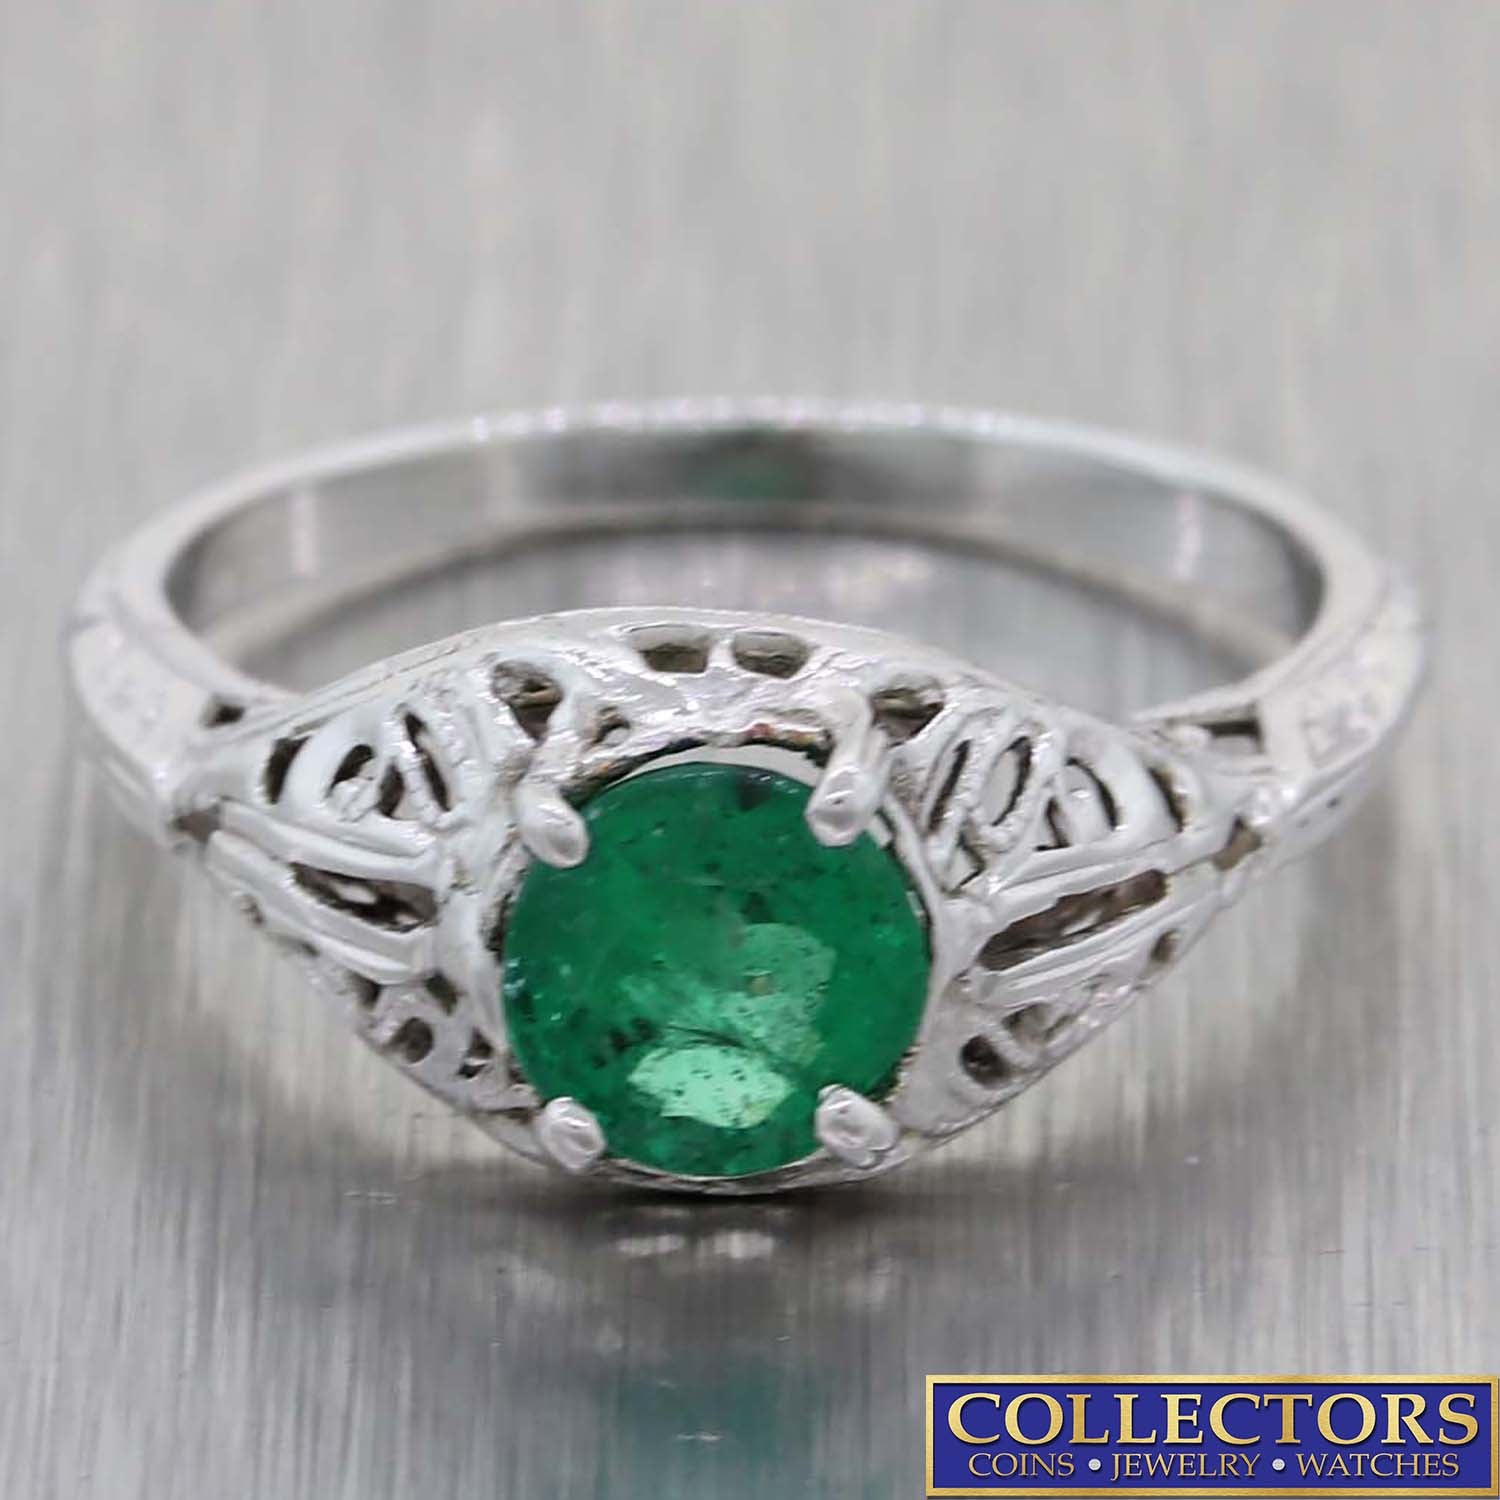 1930s Antique Art Deco Estate 18k White Gold .75ctw Emerald Diamond Ring E8